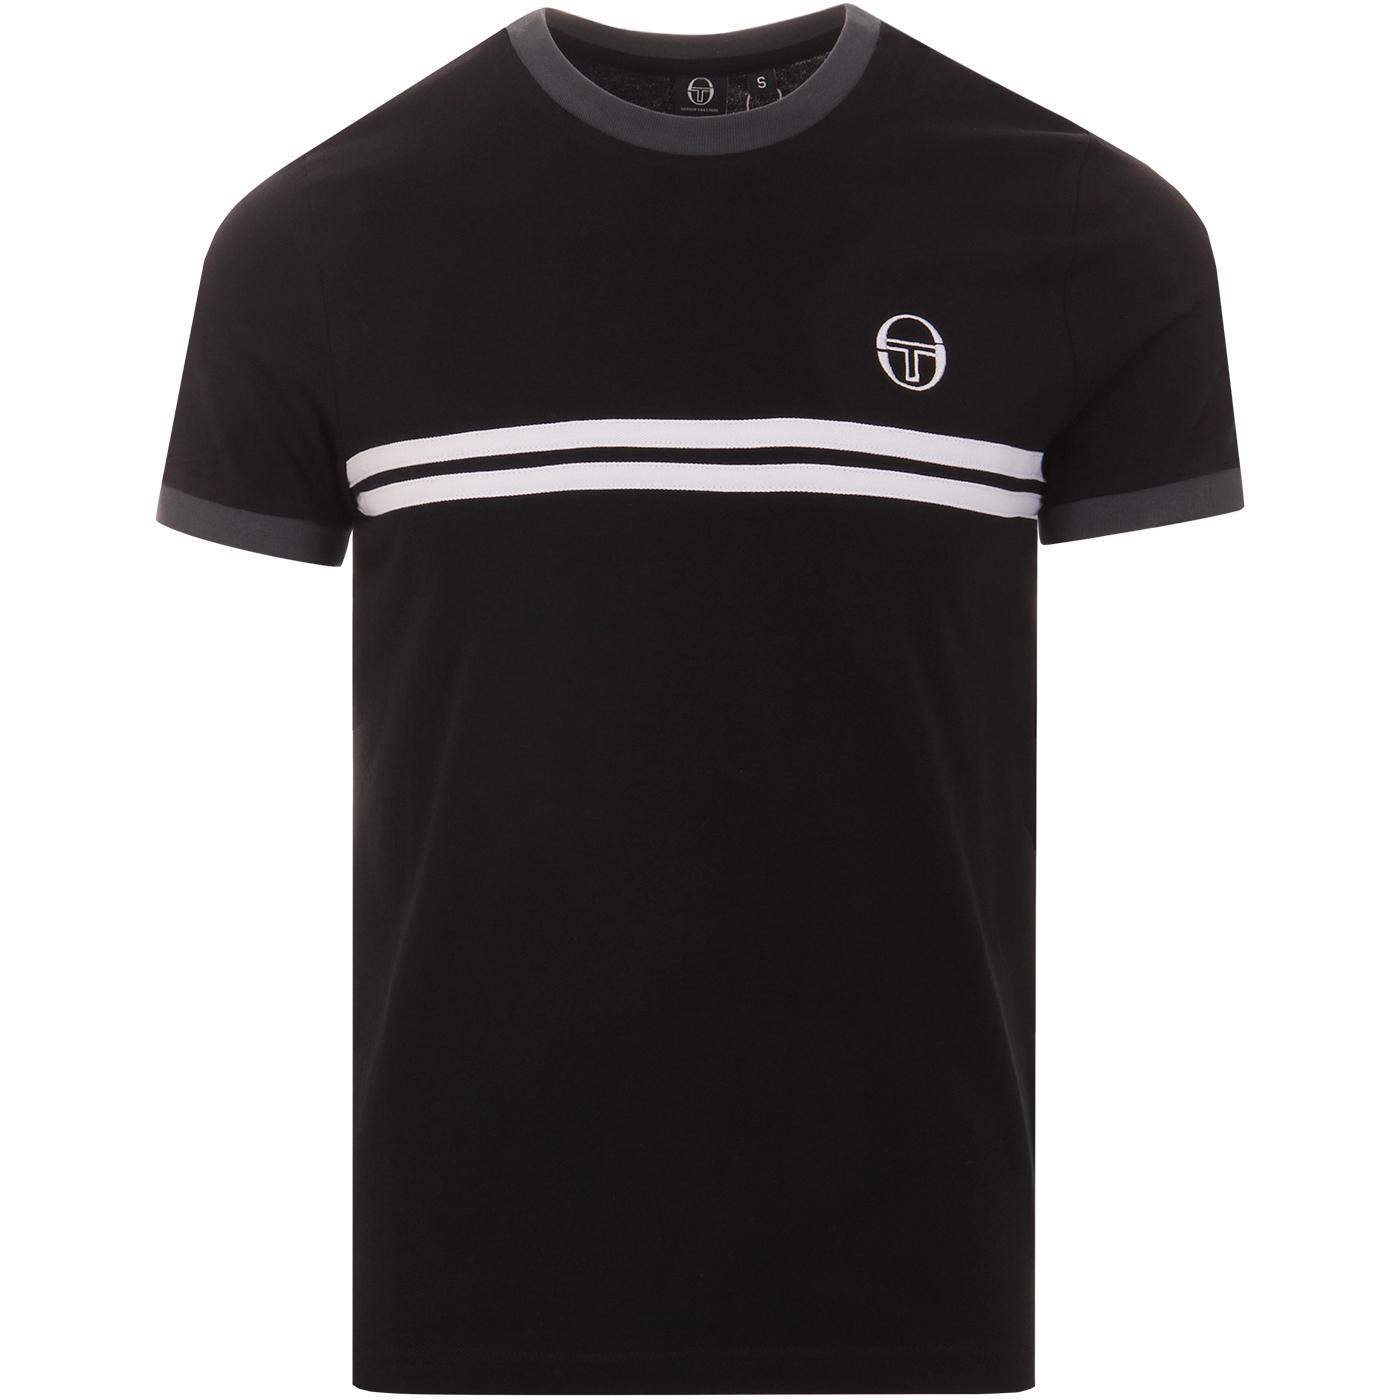 Supermac 3 SERGIO TACCHINI Retro Stripe Tee BLACK